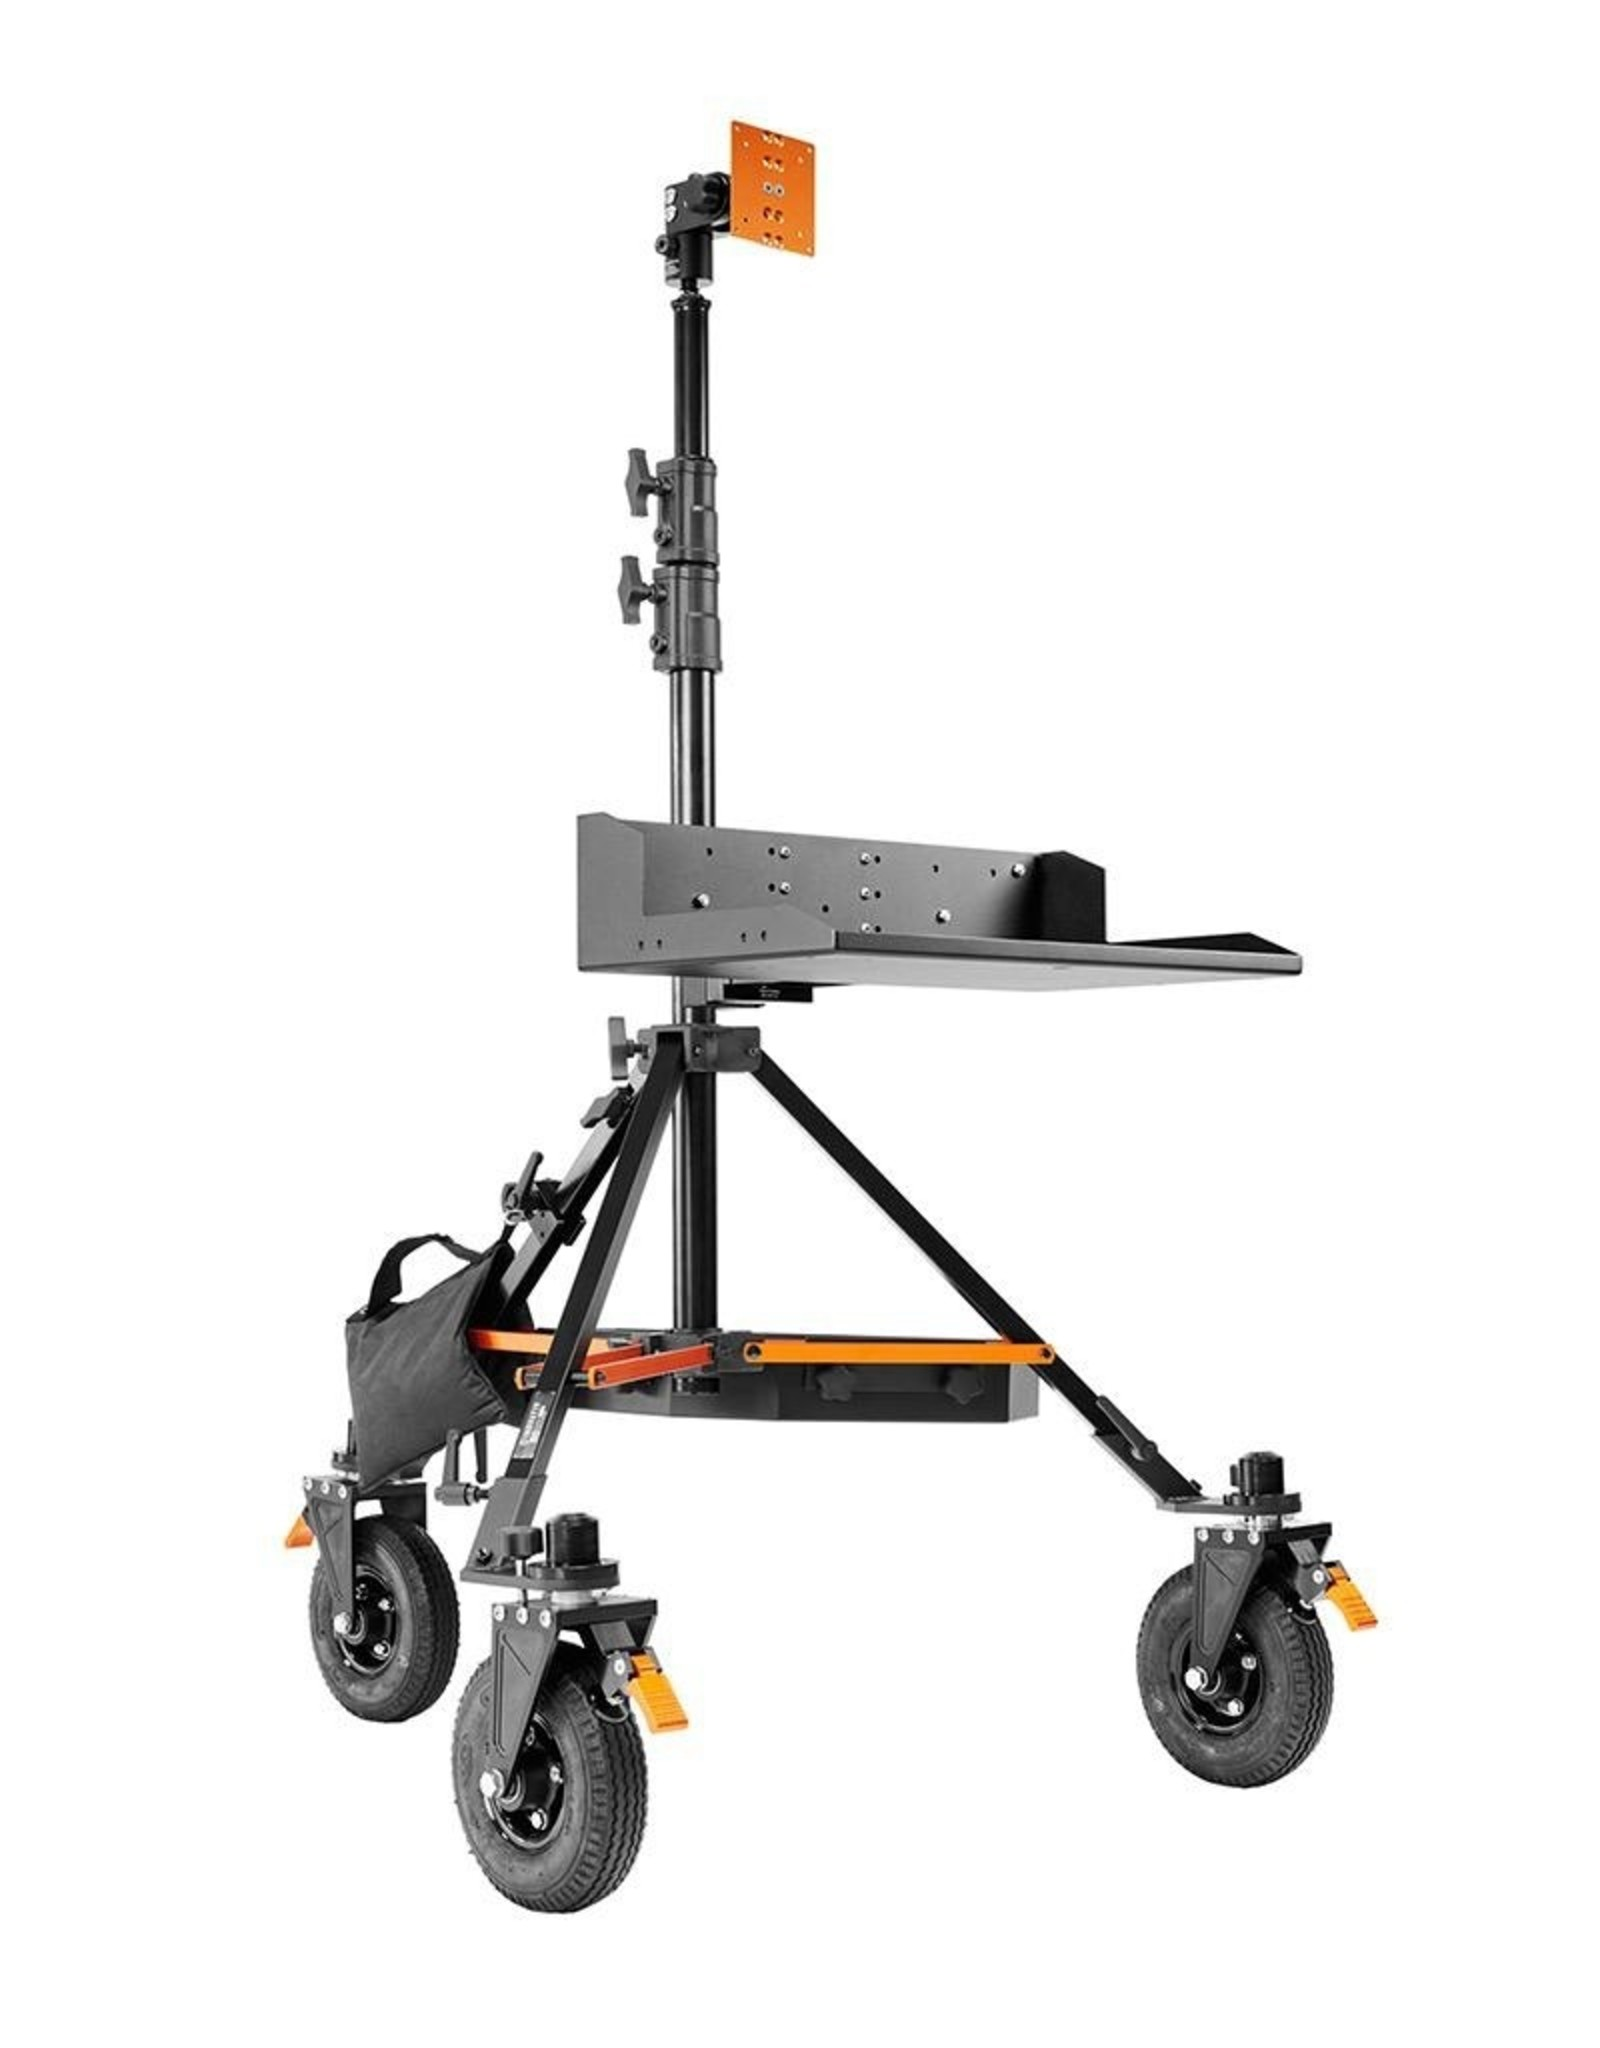 Inovativ Inovativ AXIS Digi Station. Includes the AXIS Stand + Wheel System, Digi Platform, Pro Monitor Mount, Trough and Weight Hanger + 25lb Weight Bag.